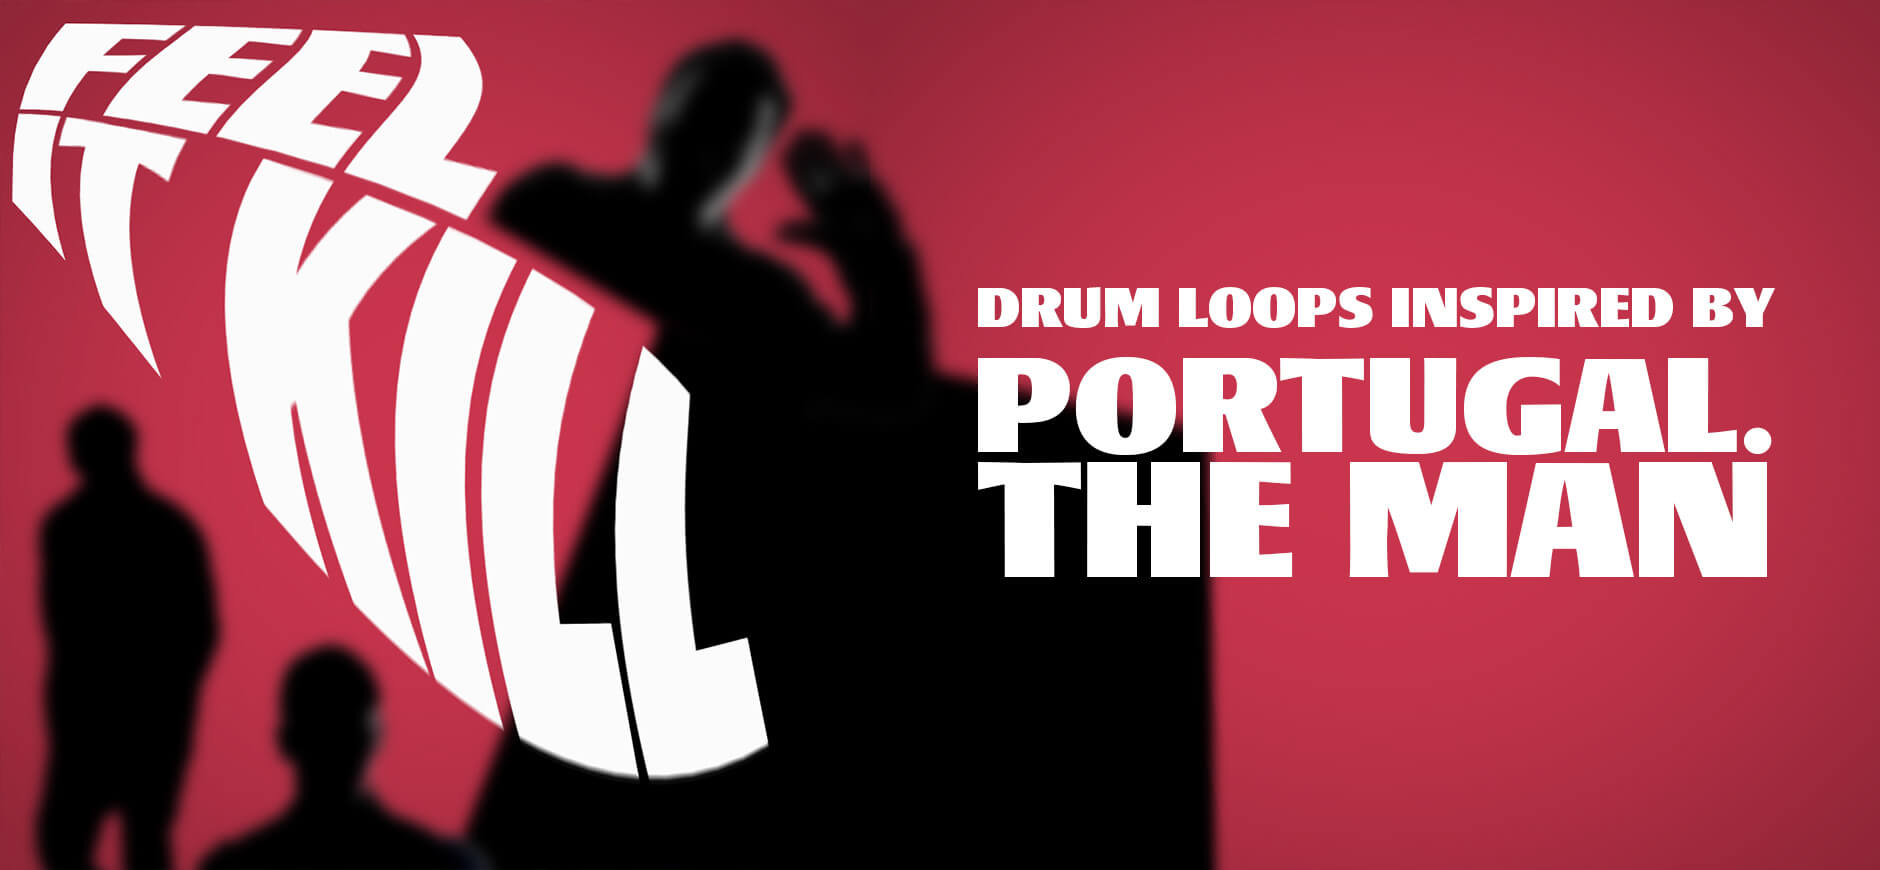 Feel It Still Drum Loops Inspired by Portugal. The Man